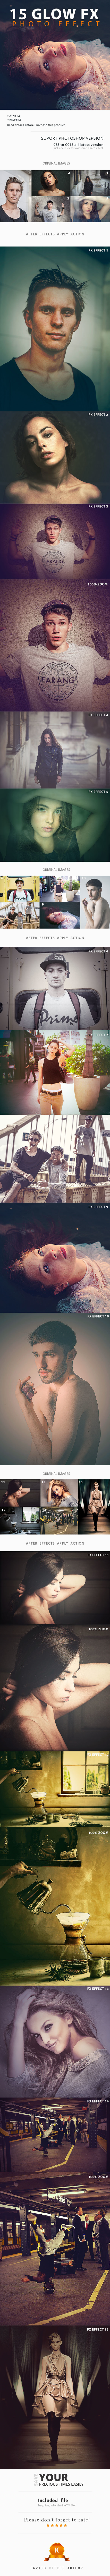 15 Glow FX Photo Effect - Photo Effects Actions